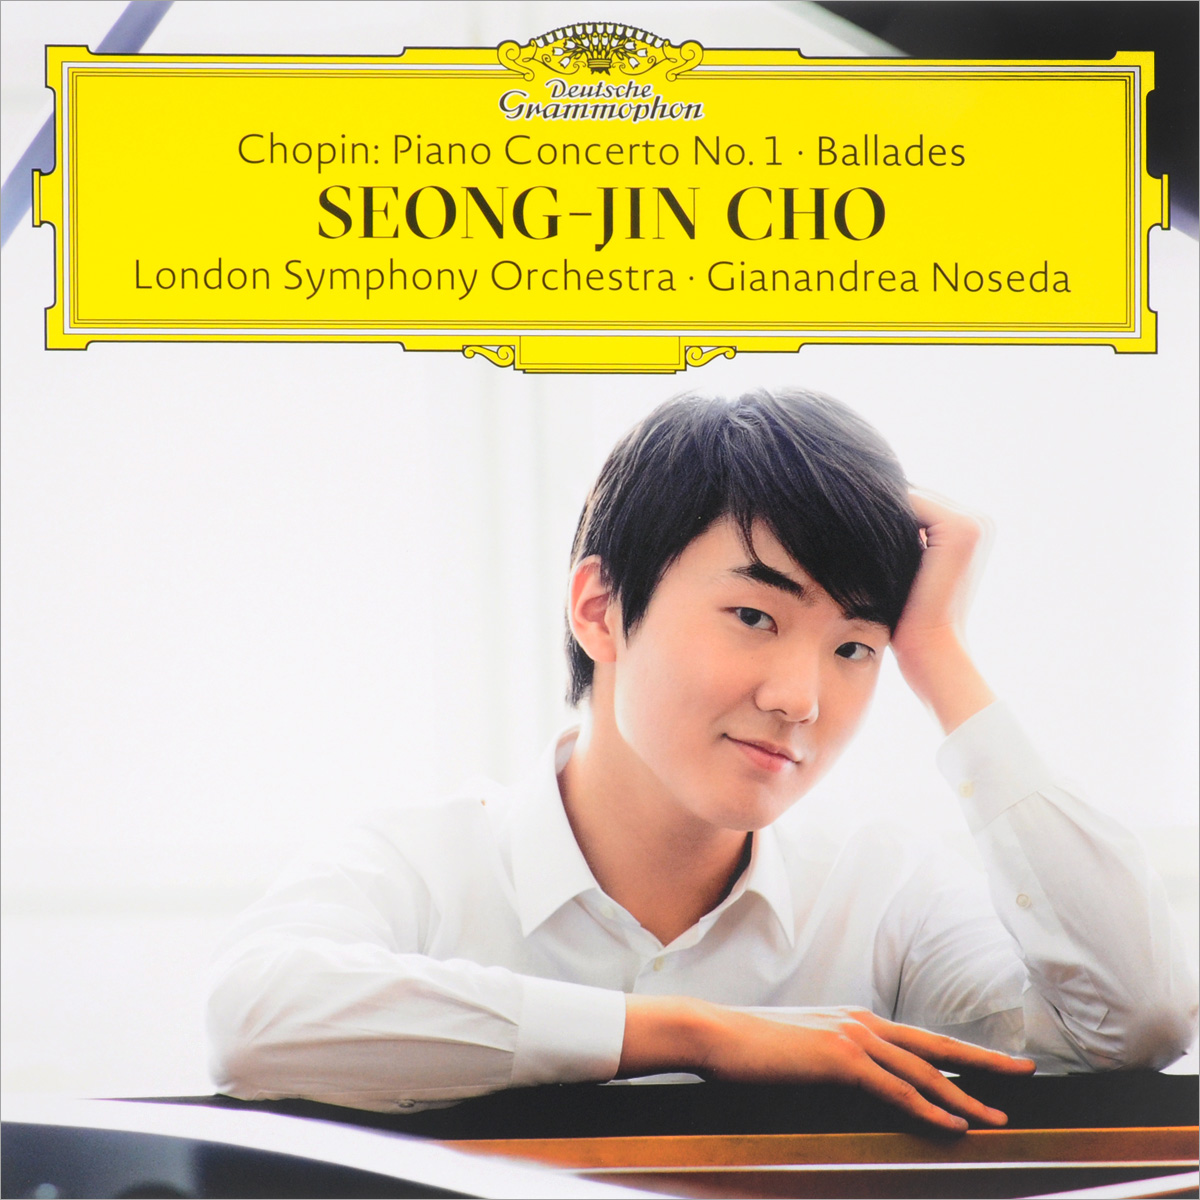 Сон Чжин Чо,The London Symphony Orchestra,Жанандреа Нозеда Seong-Jin Cho, London Symphony Orchestra, Gianandrea Noseda. Chopin. Piano Concerto No. 1 / Ballades (2 LP) sterne laurence the works of laurence sterne